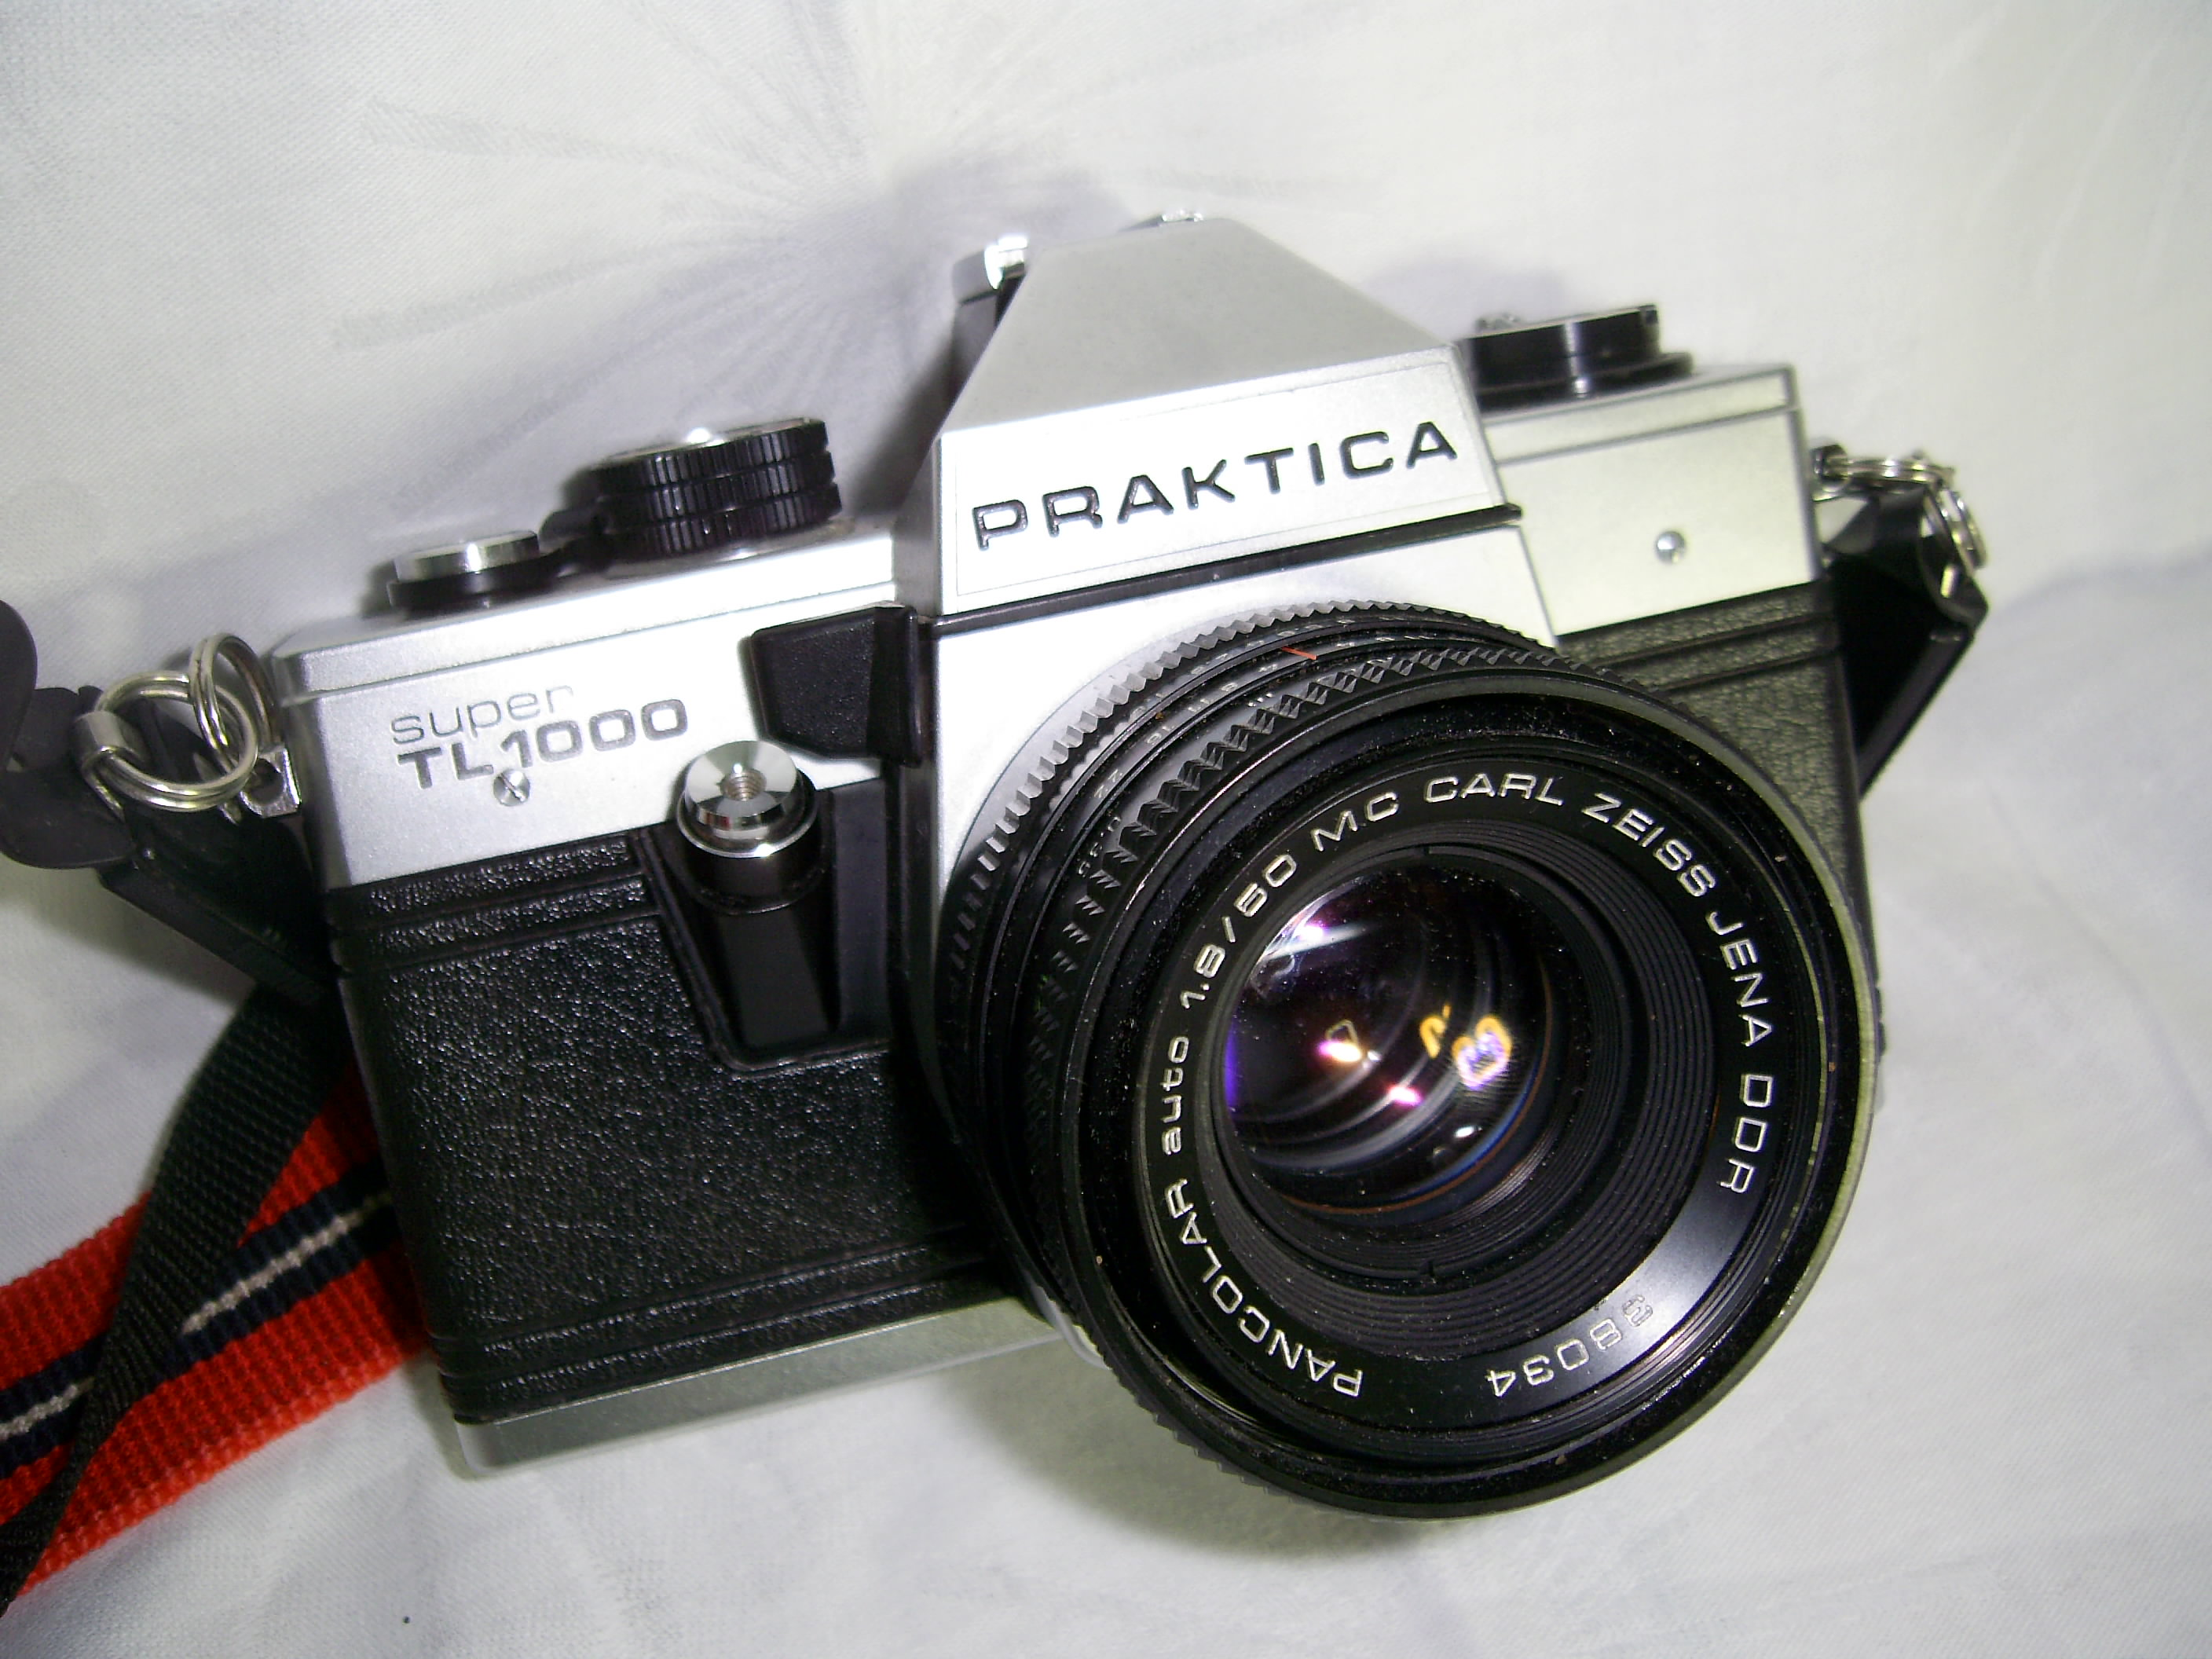 Datei:praktica super tl 1000.jpg u2013 wikipedia